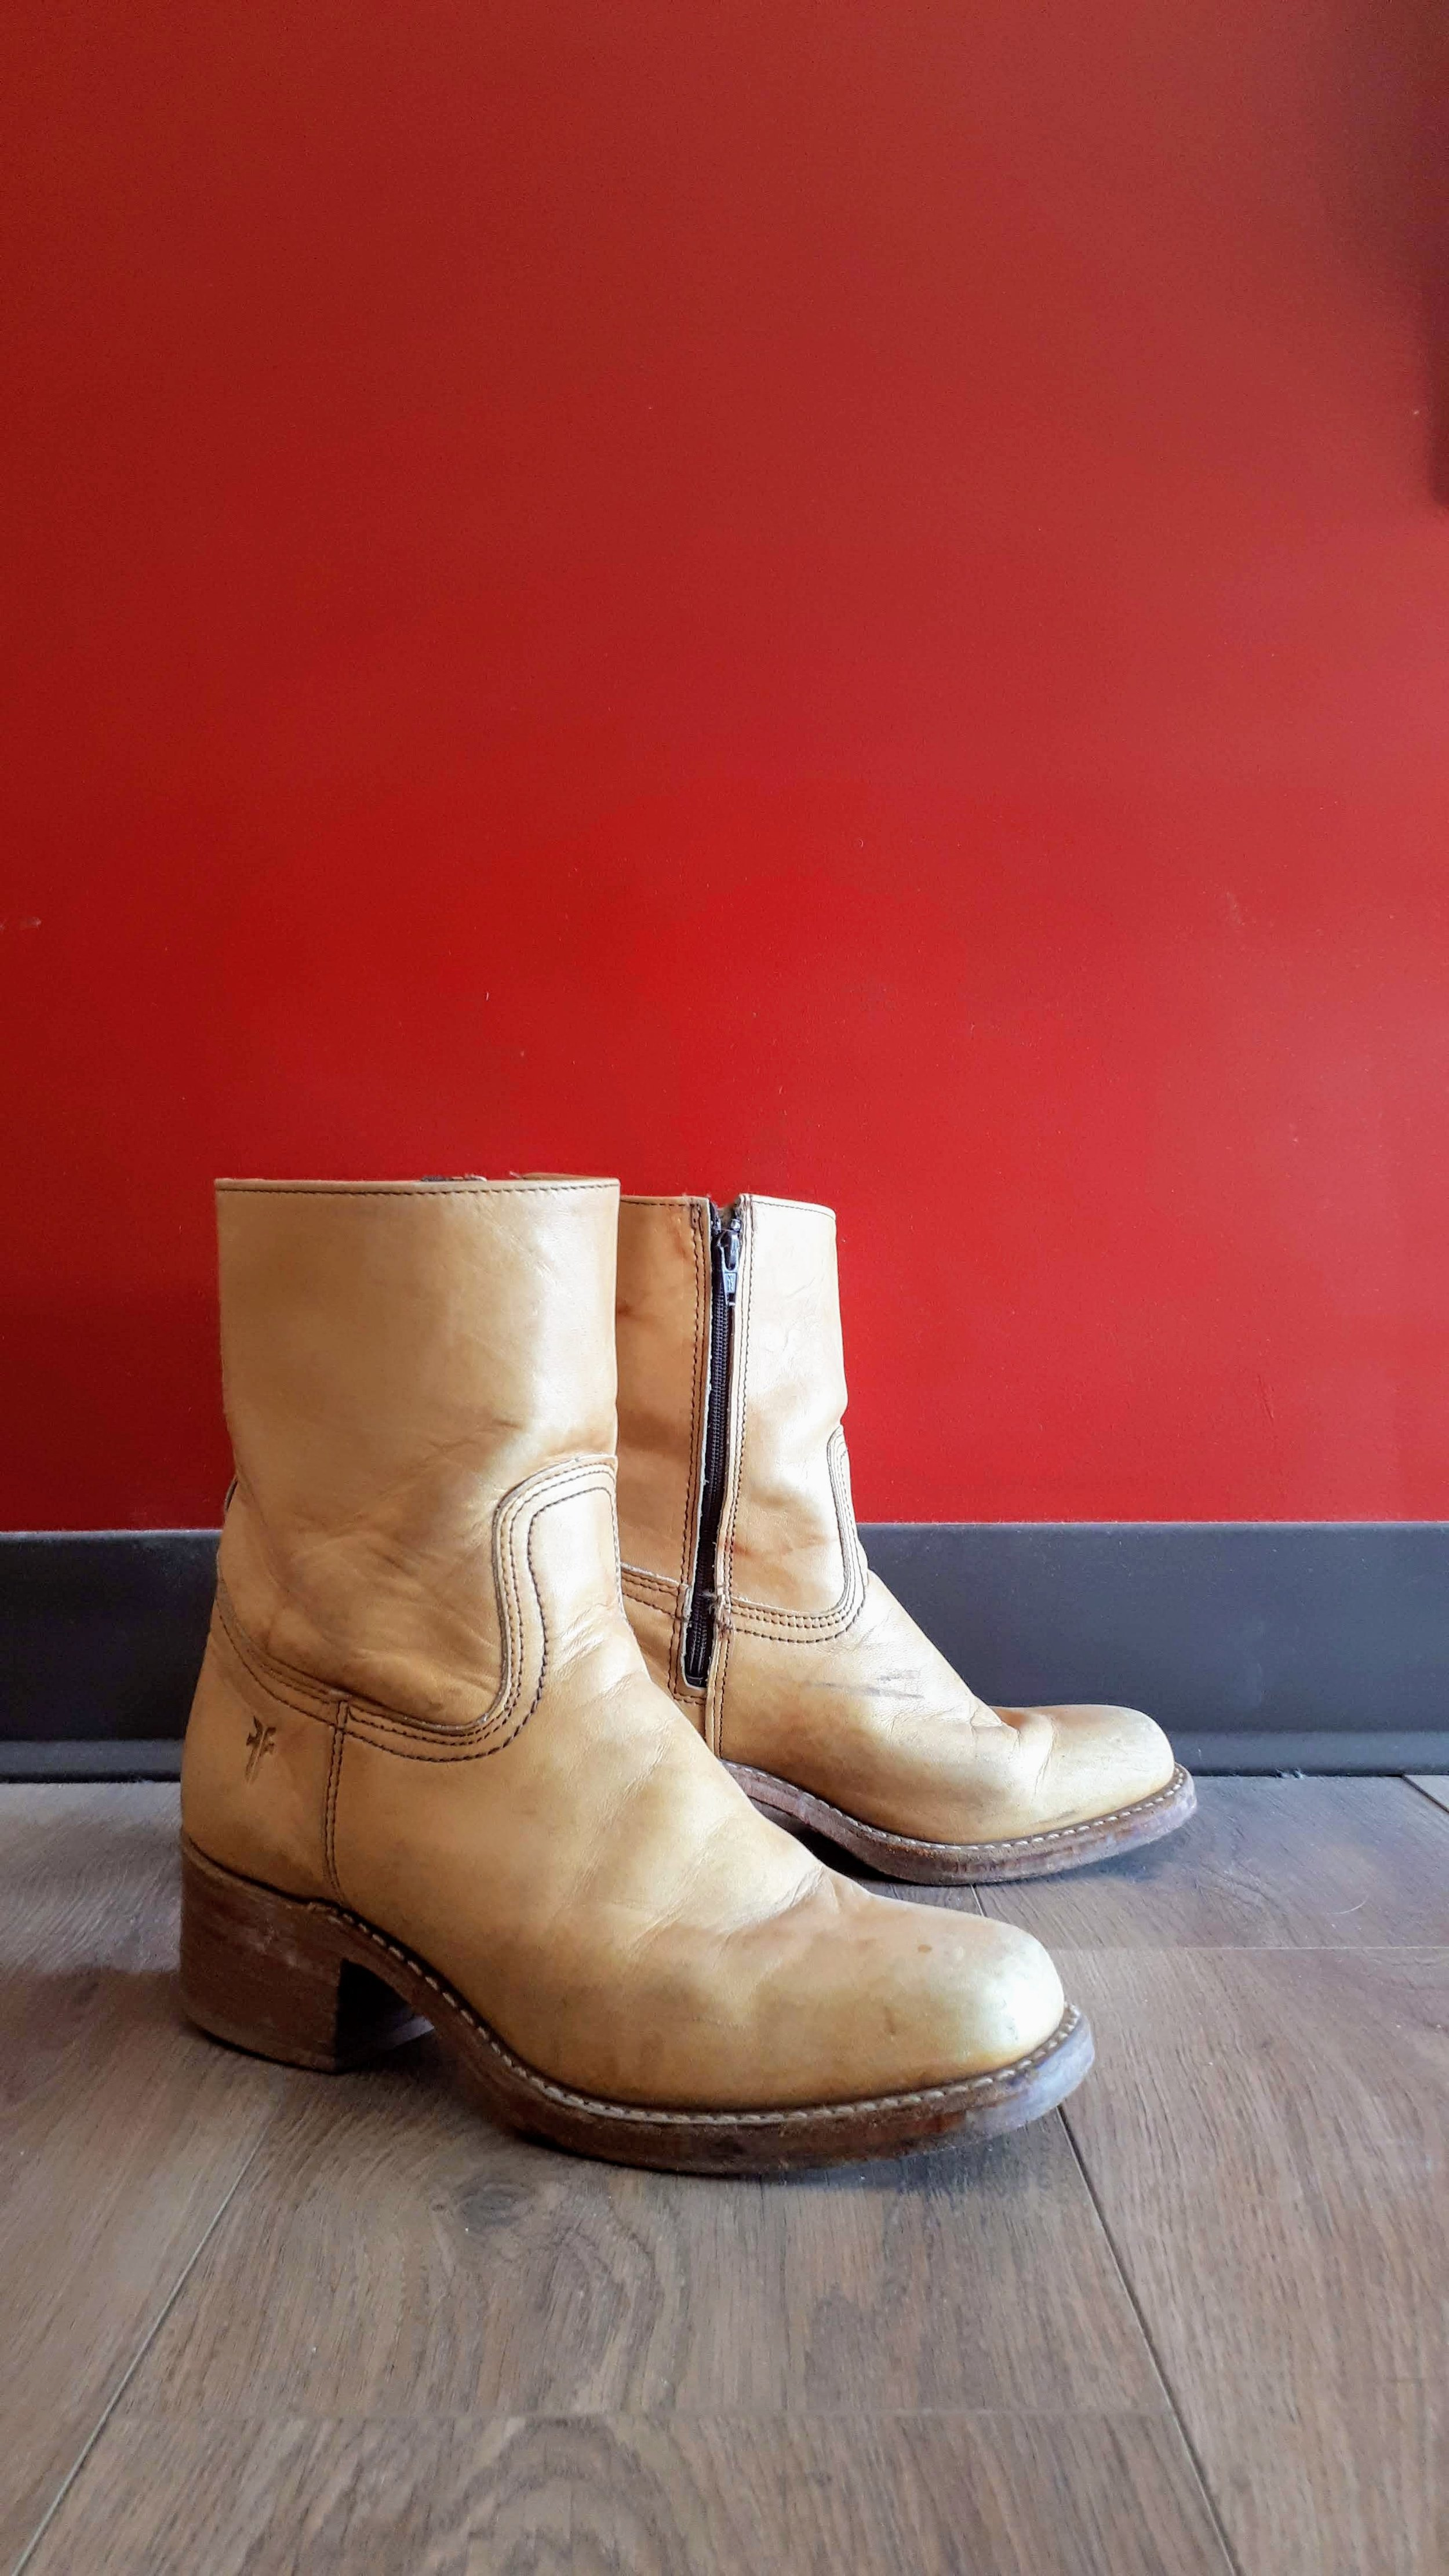 Frye boots; Size 7.5, $85